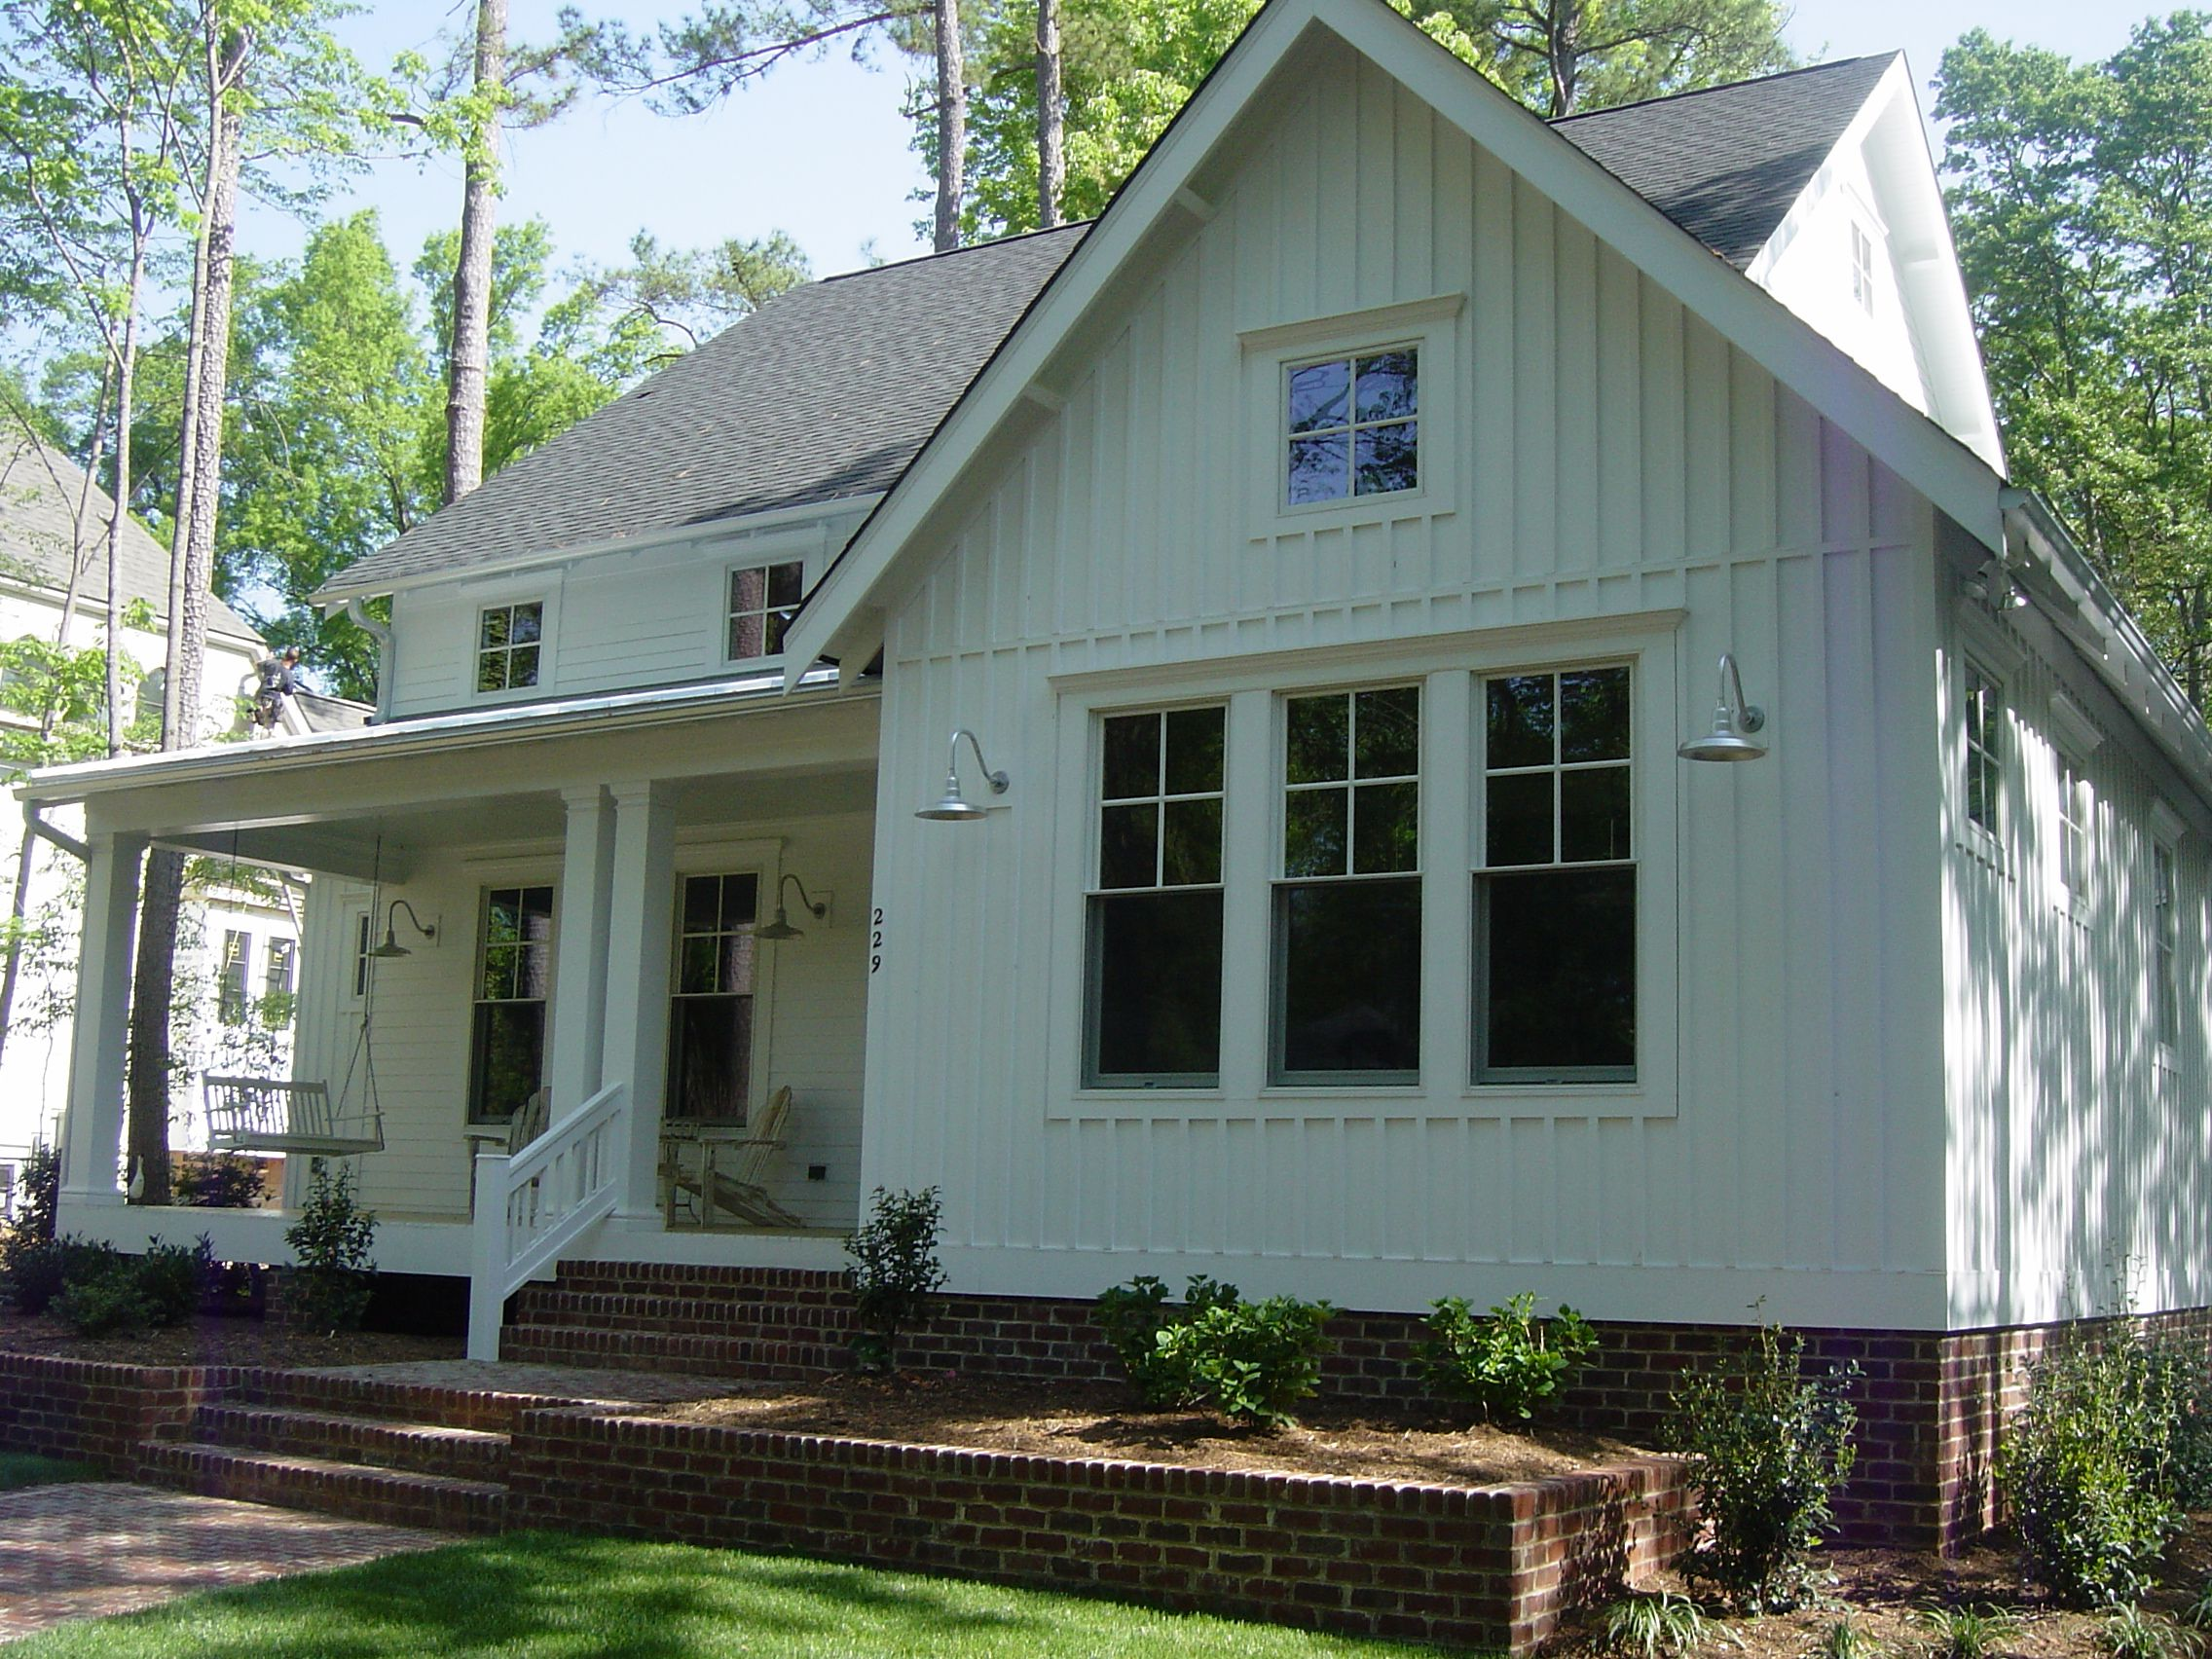 Horizontal Board And Batten Siding Just Love This New Farmhouse Style Home With Batten Board